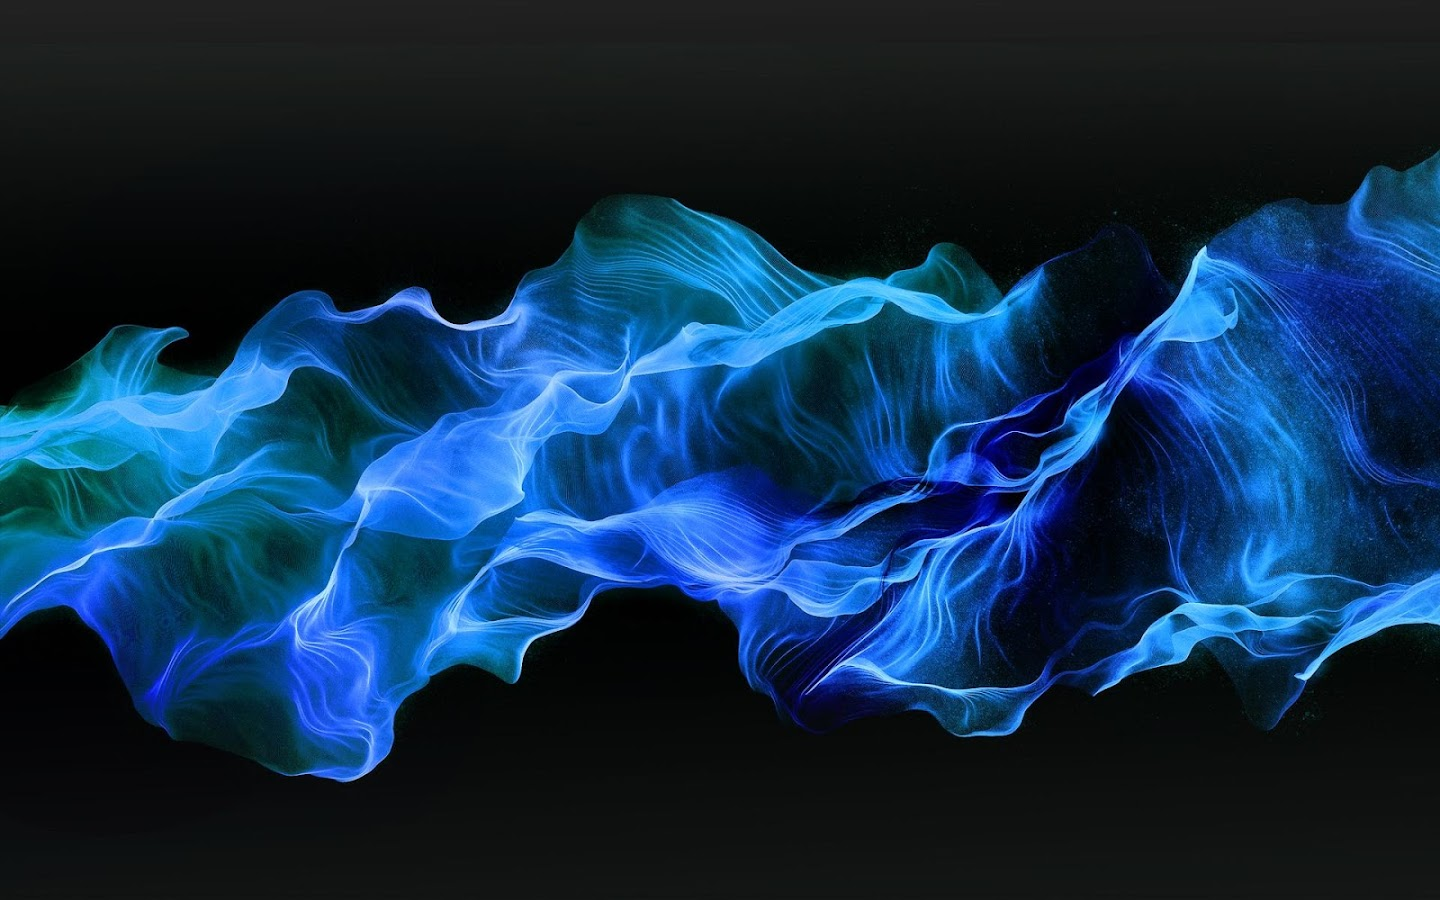 Blue Fire Live Wallpaper 1.30 APK Download - Android ...